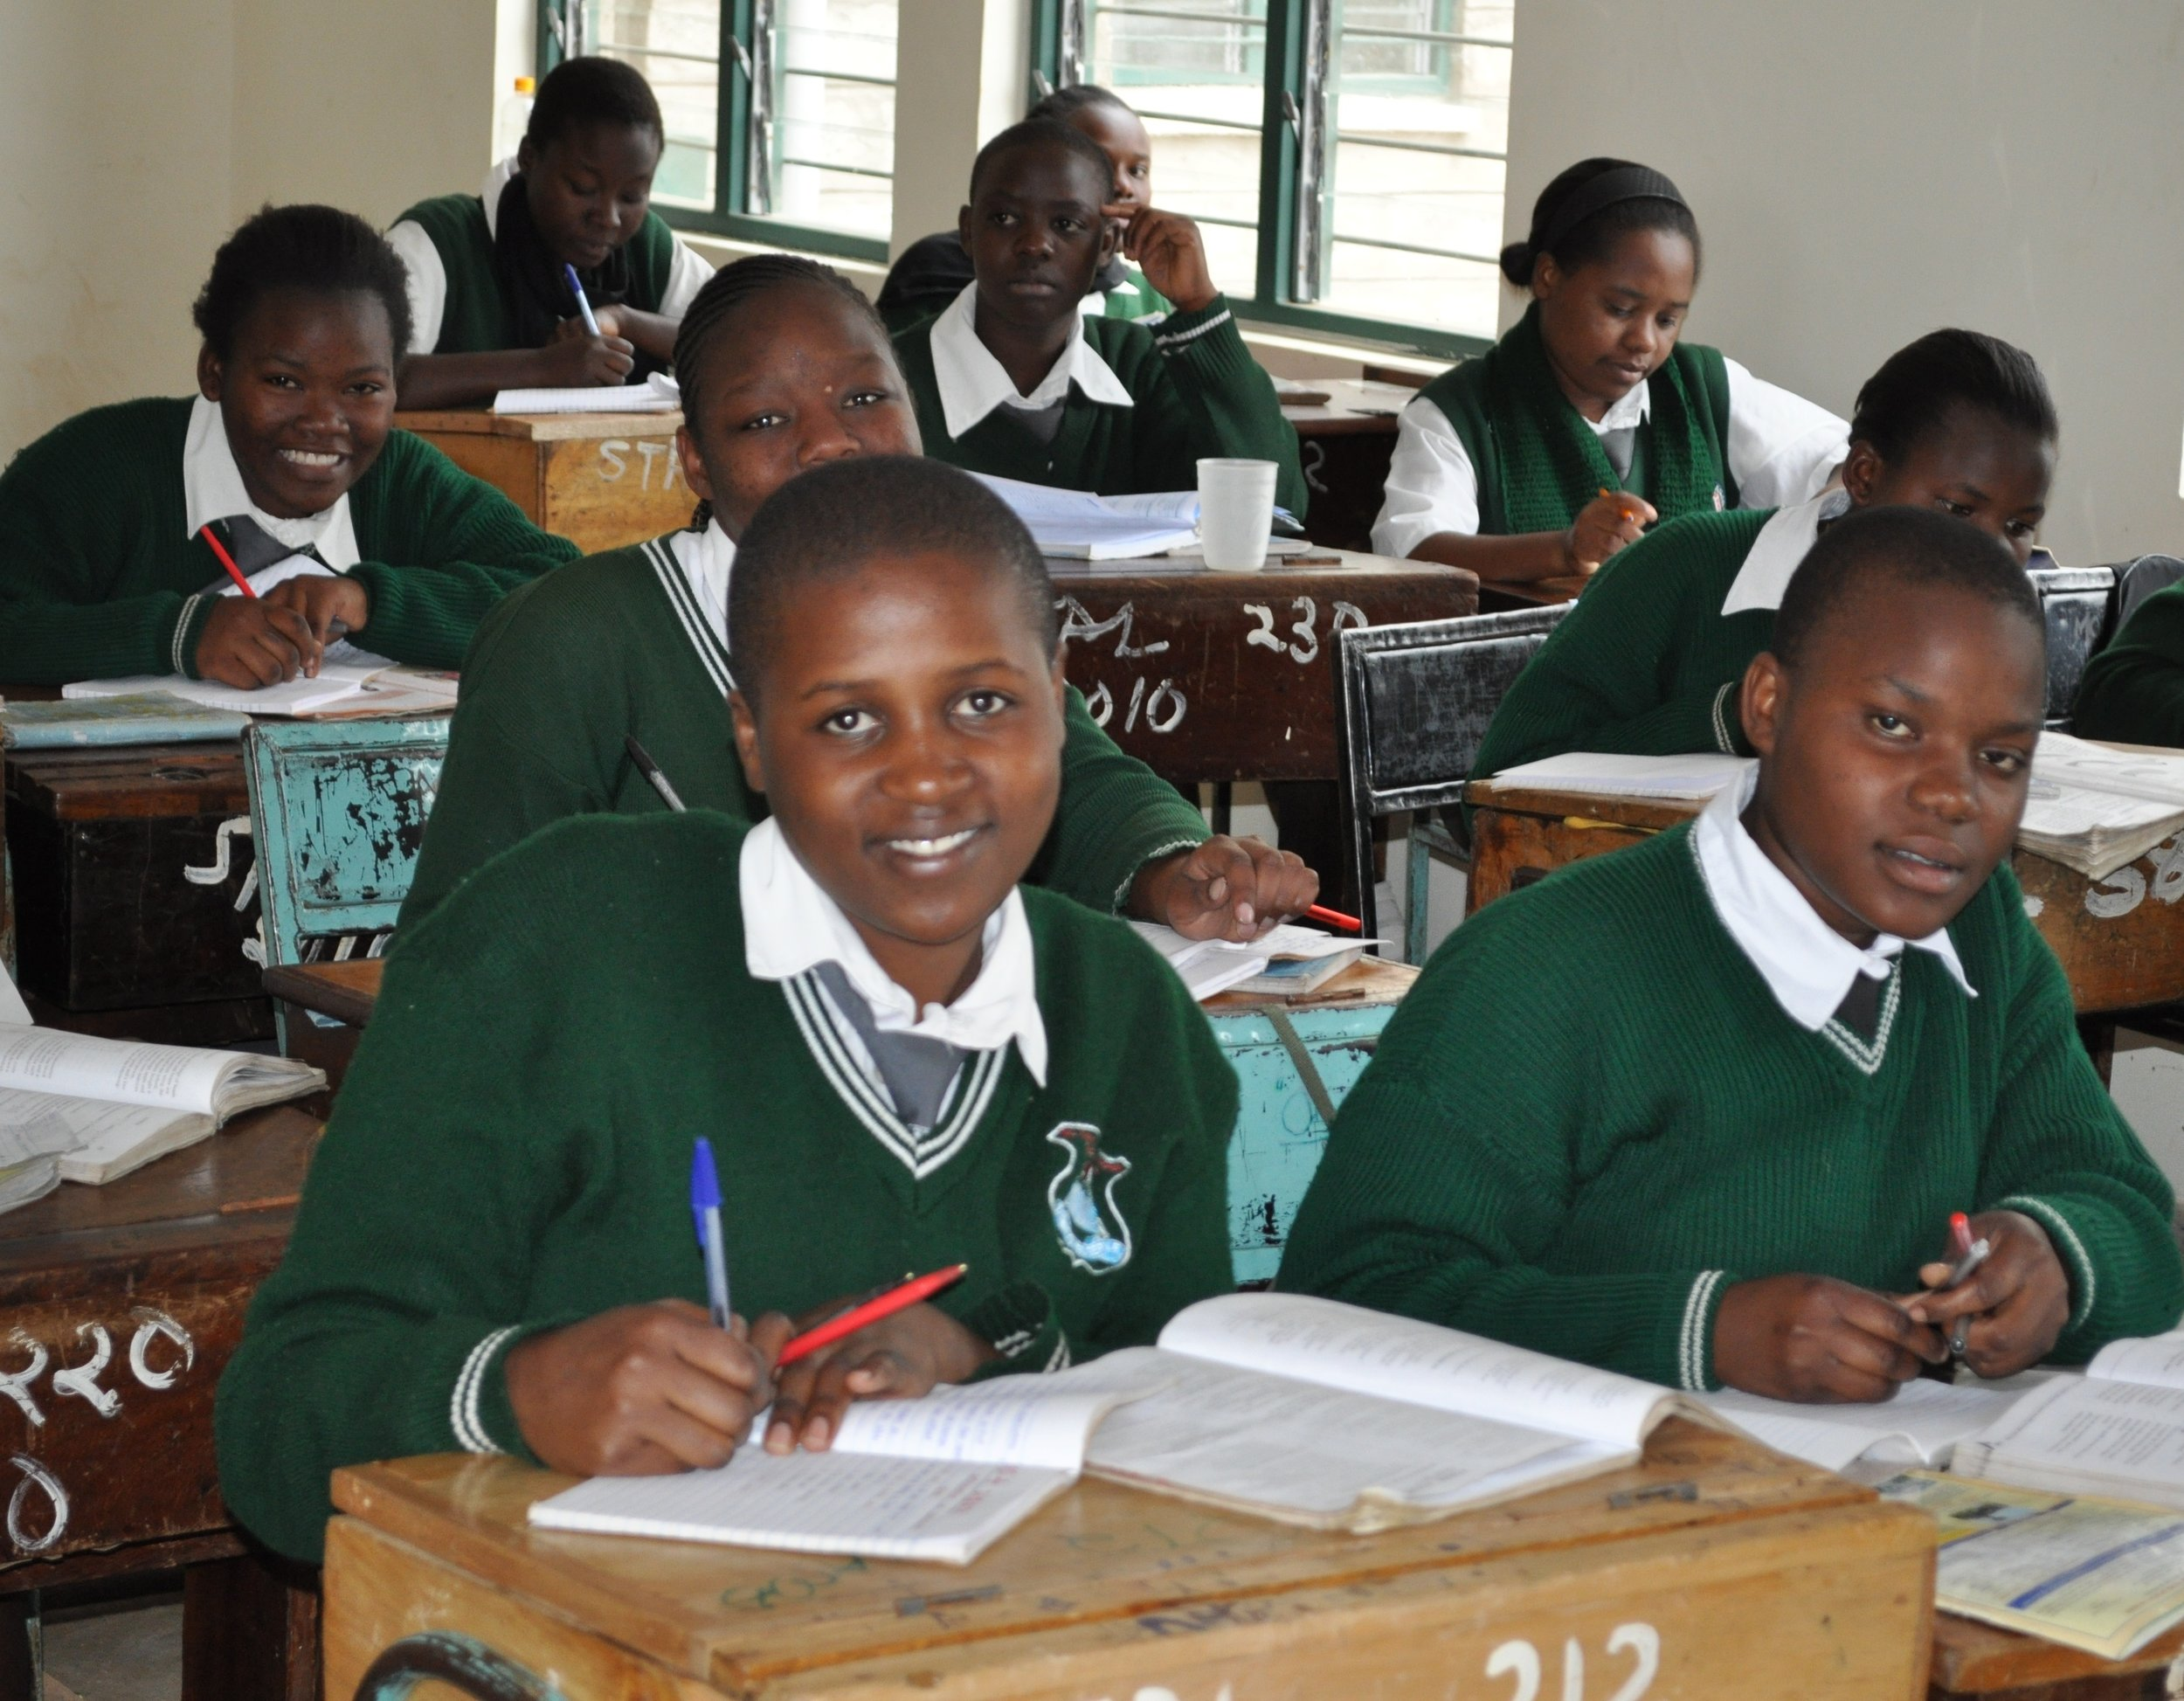 About The Foundation School Of Hope Kenya